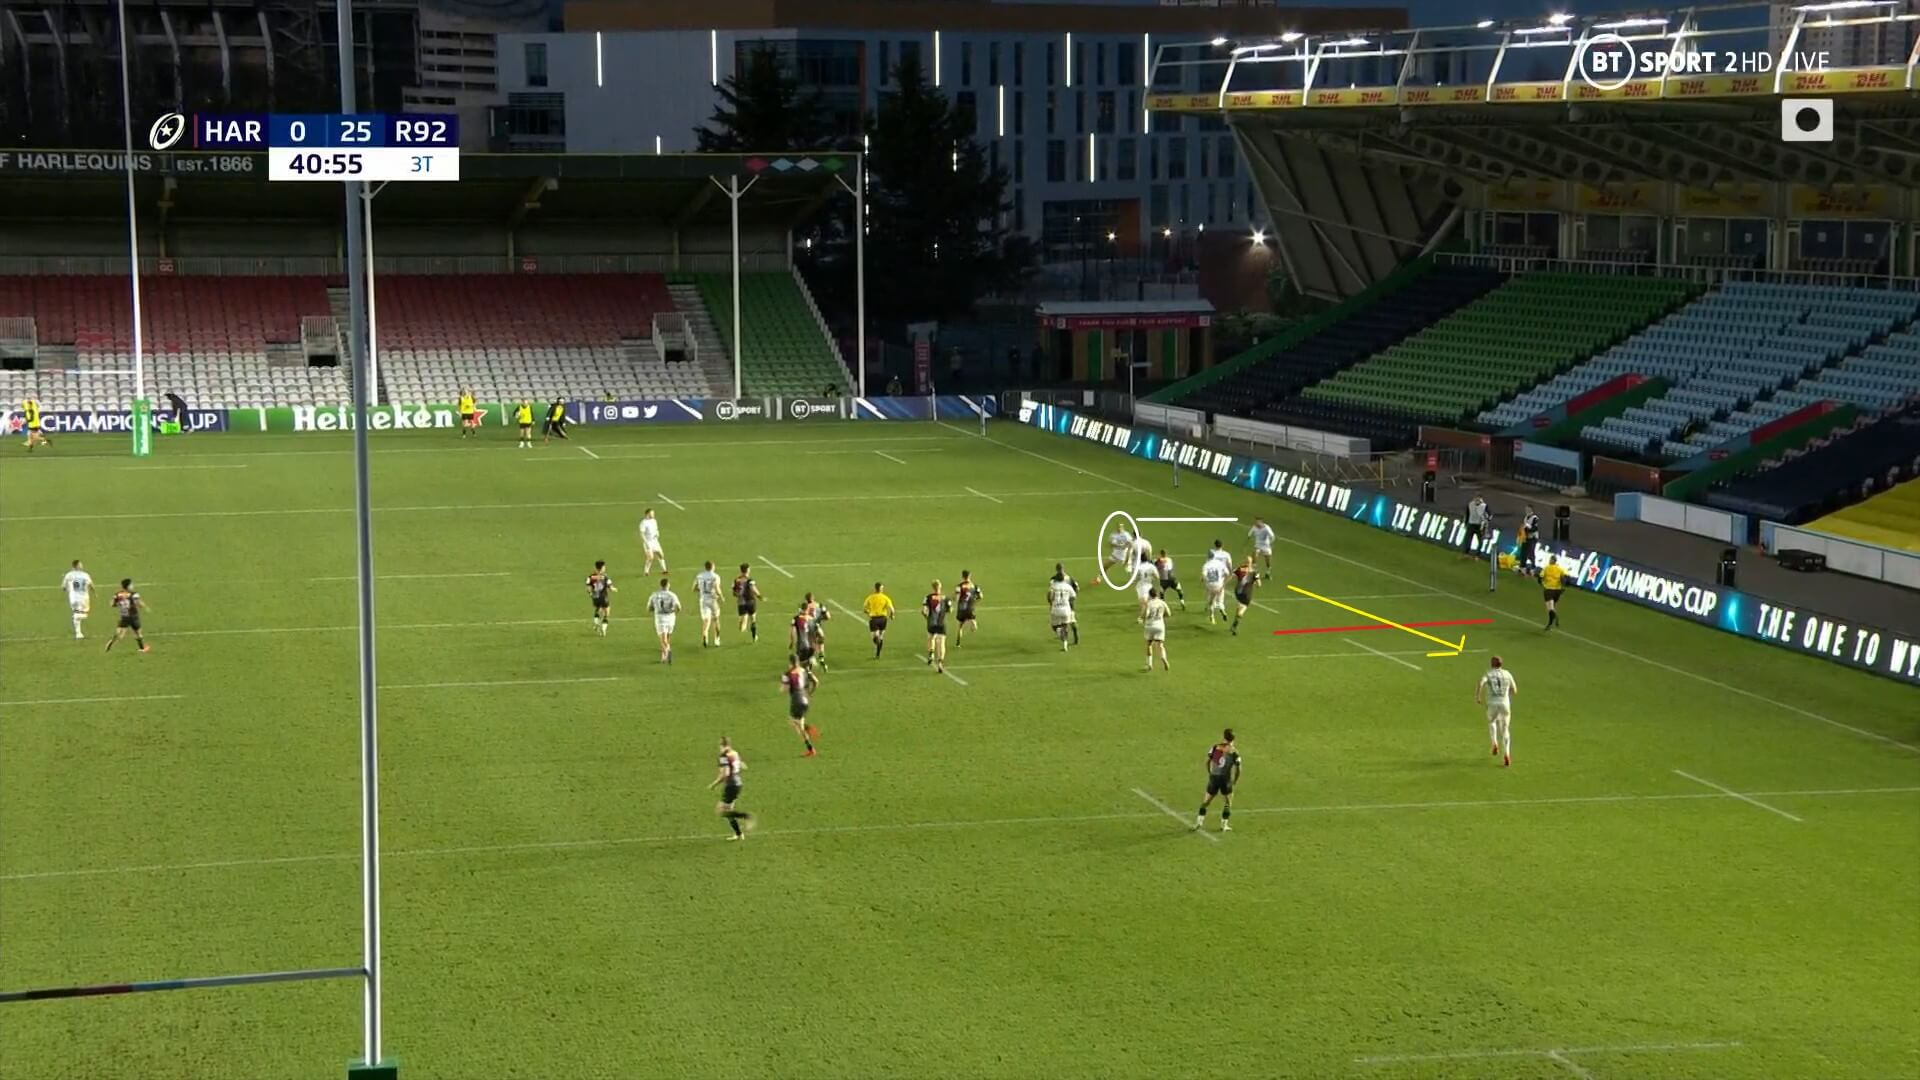 European Rugby Champions Cup 2020/2021: Harlequins v Racing 92 - tactical analysis tactics